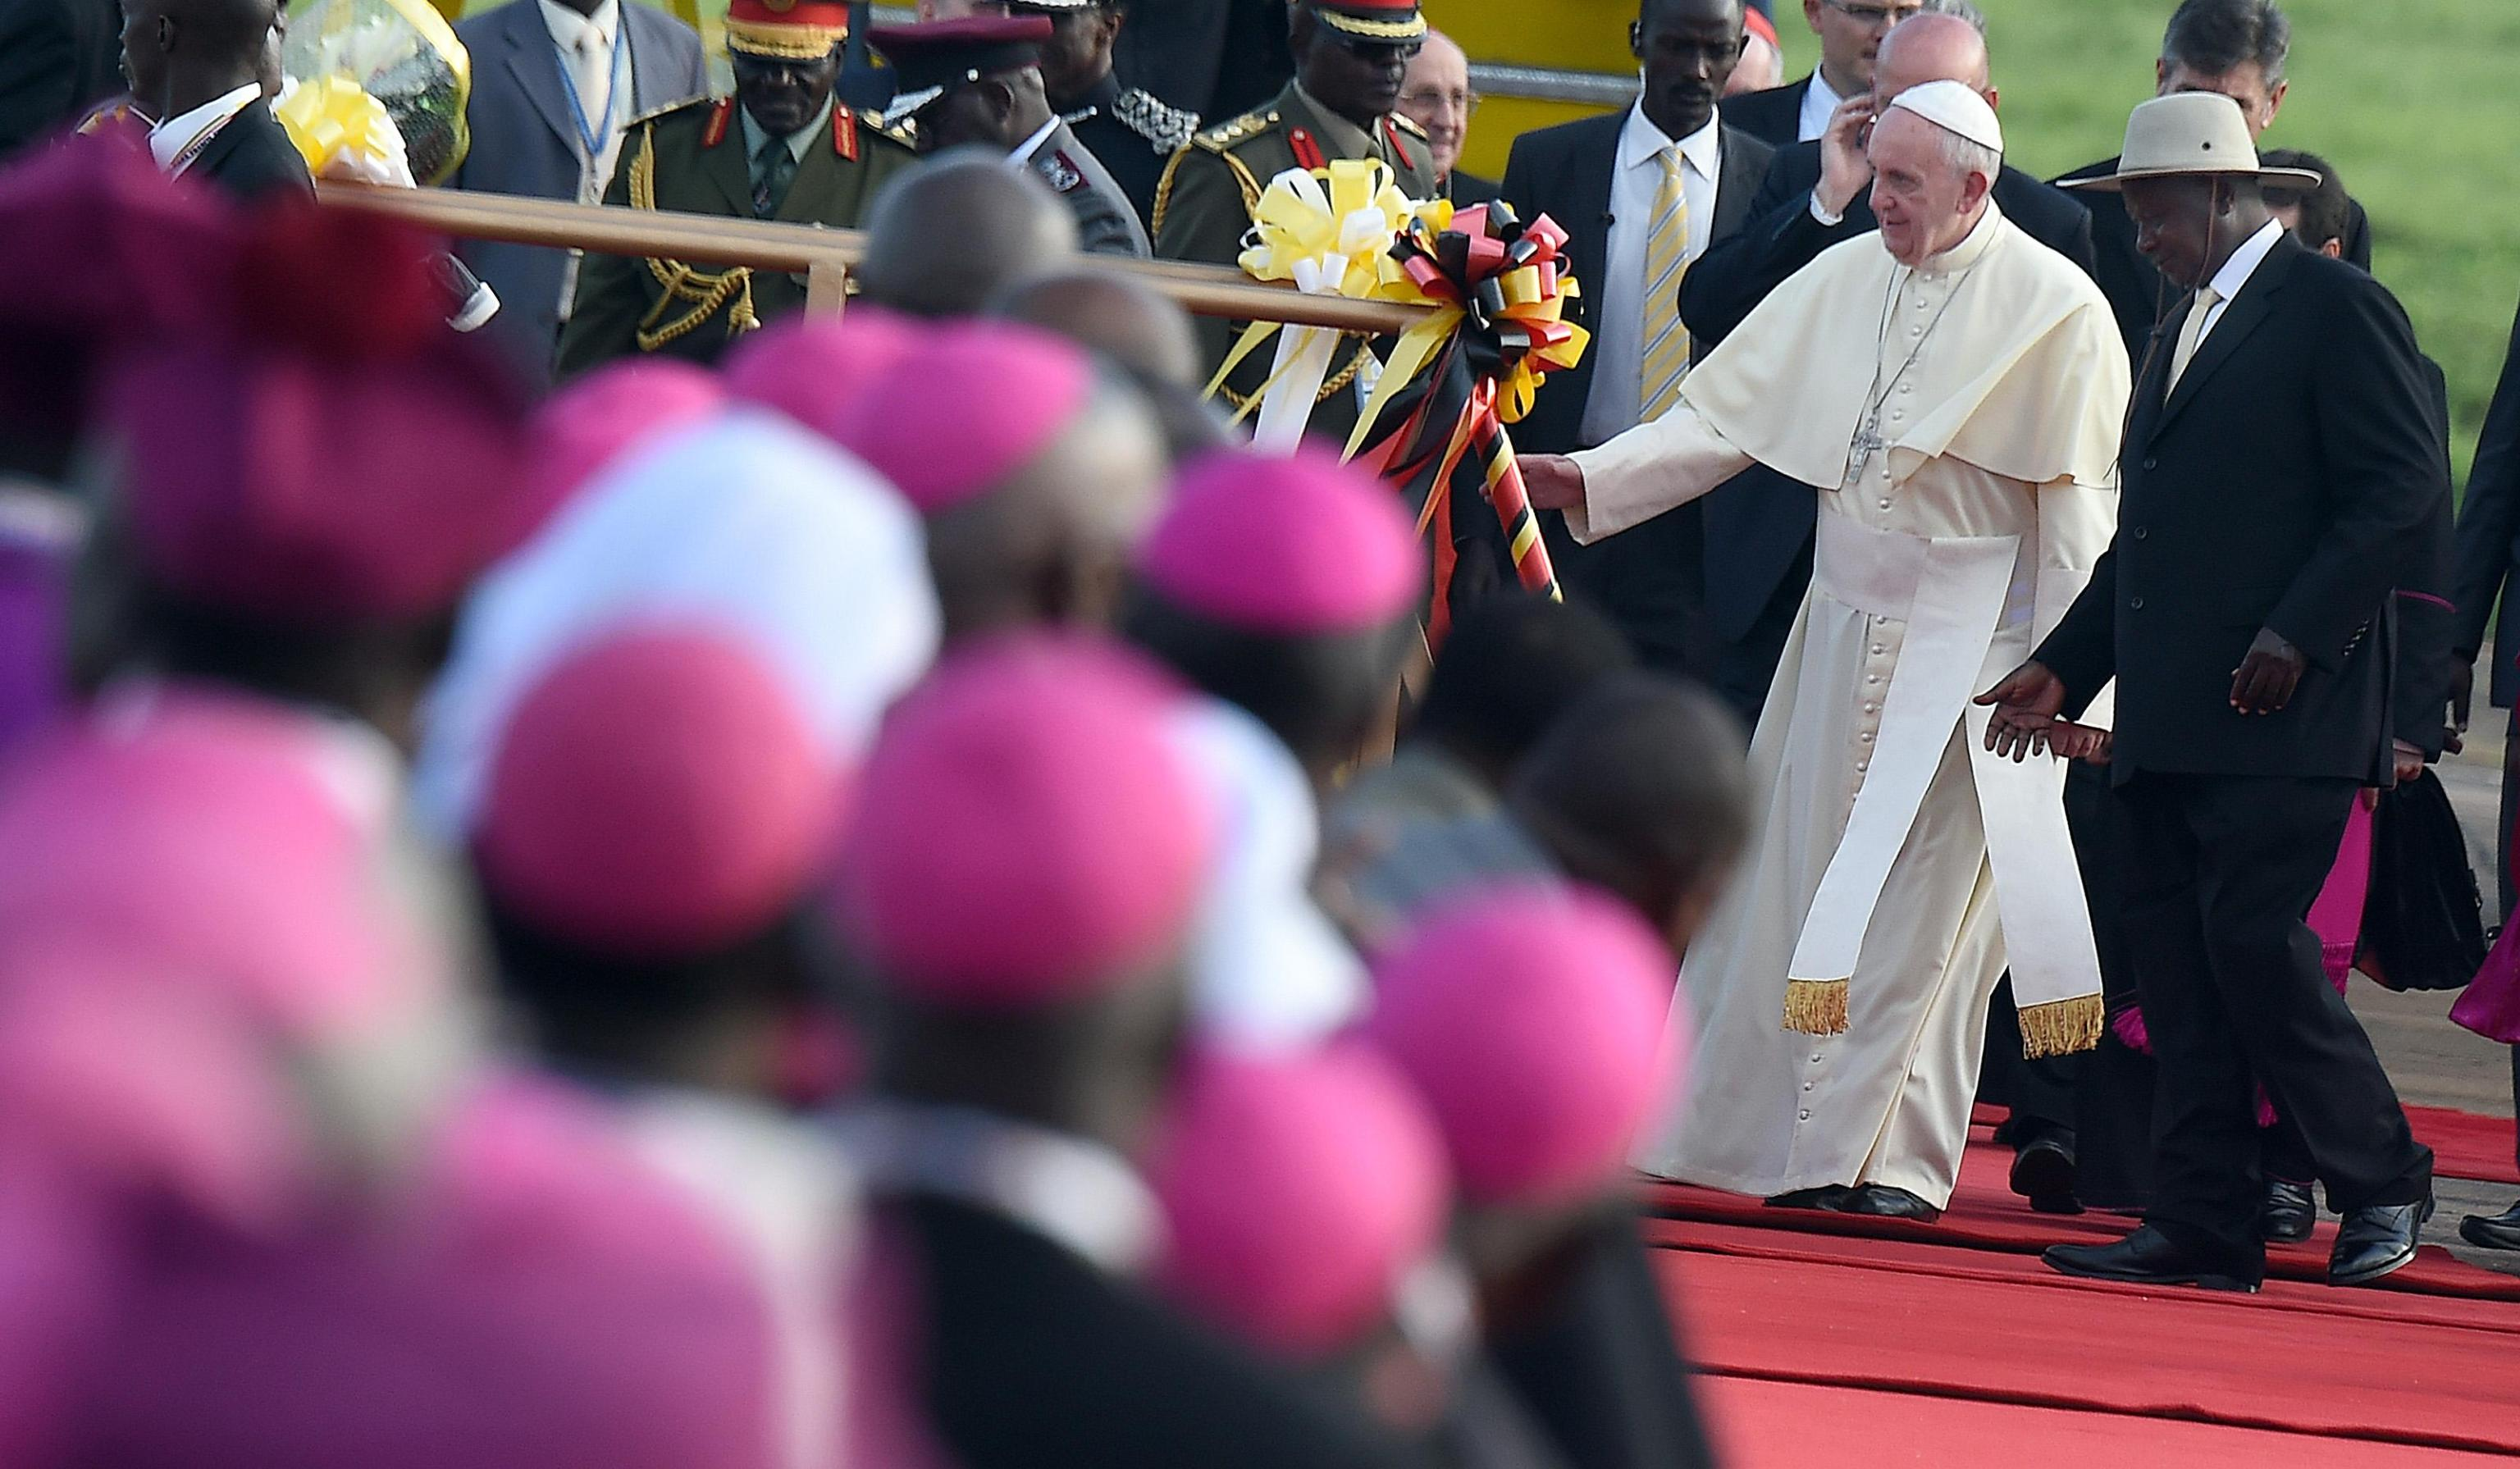 Pope Francis at his arrival at the International Airport of Entebbe